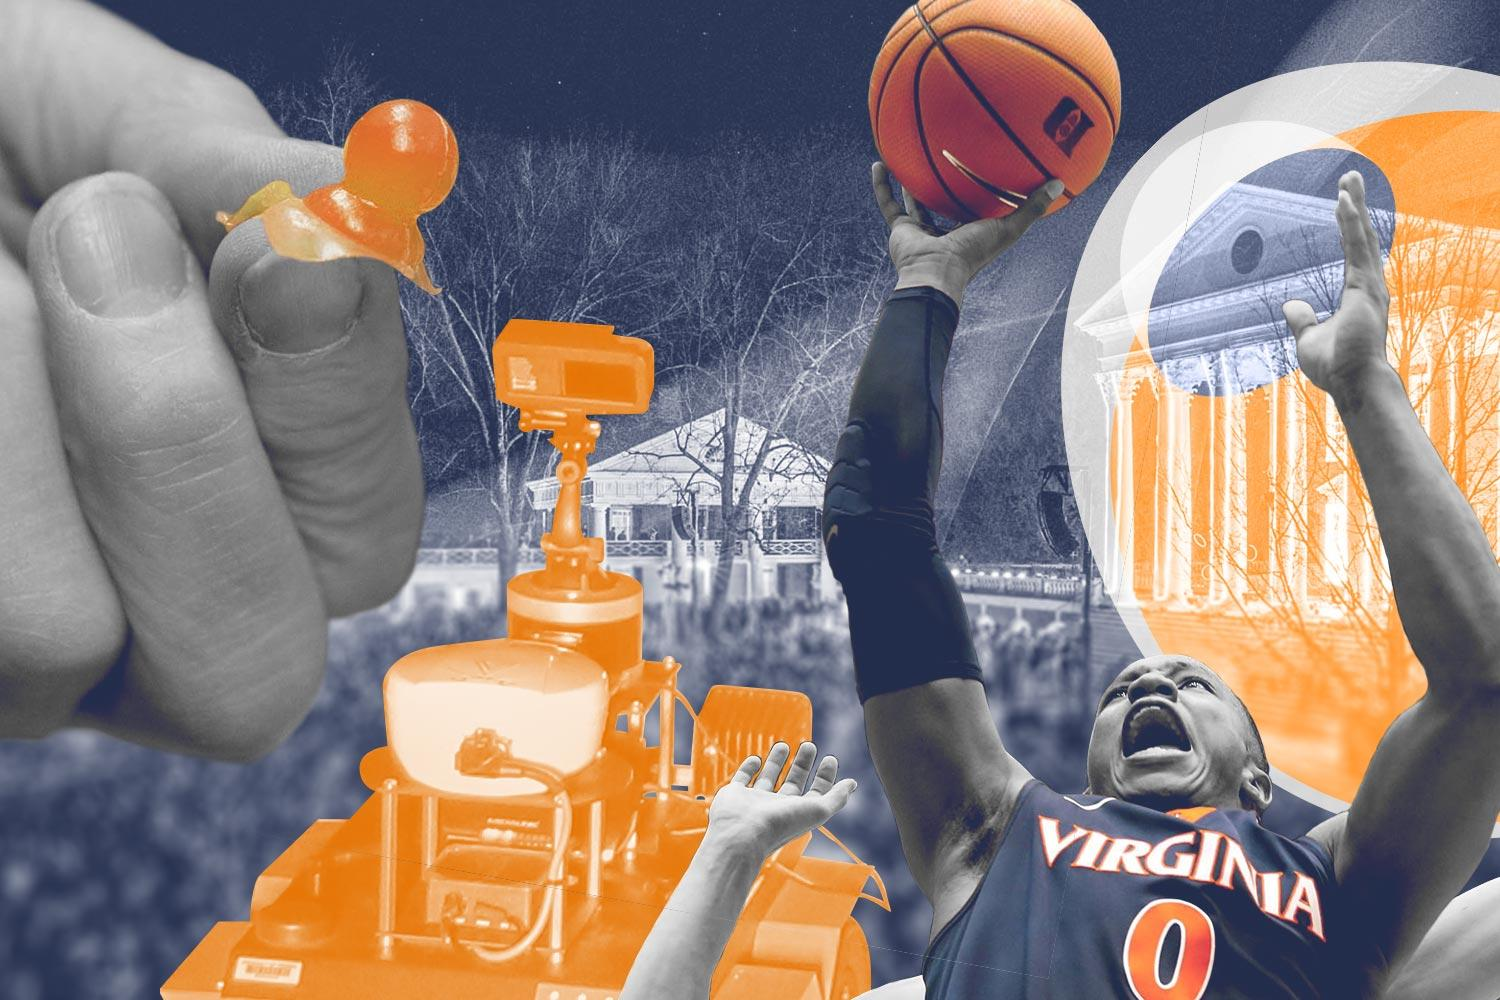 Test Your Wahoo Knowledge With This UVA Today News Quiz